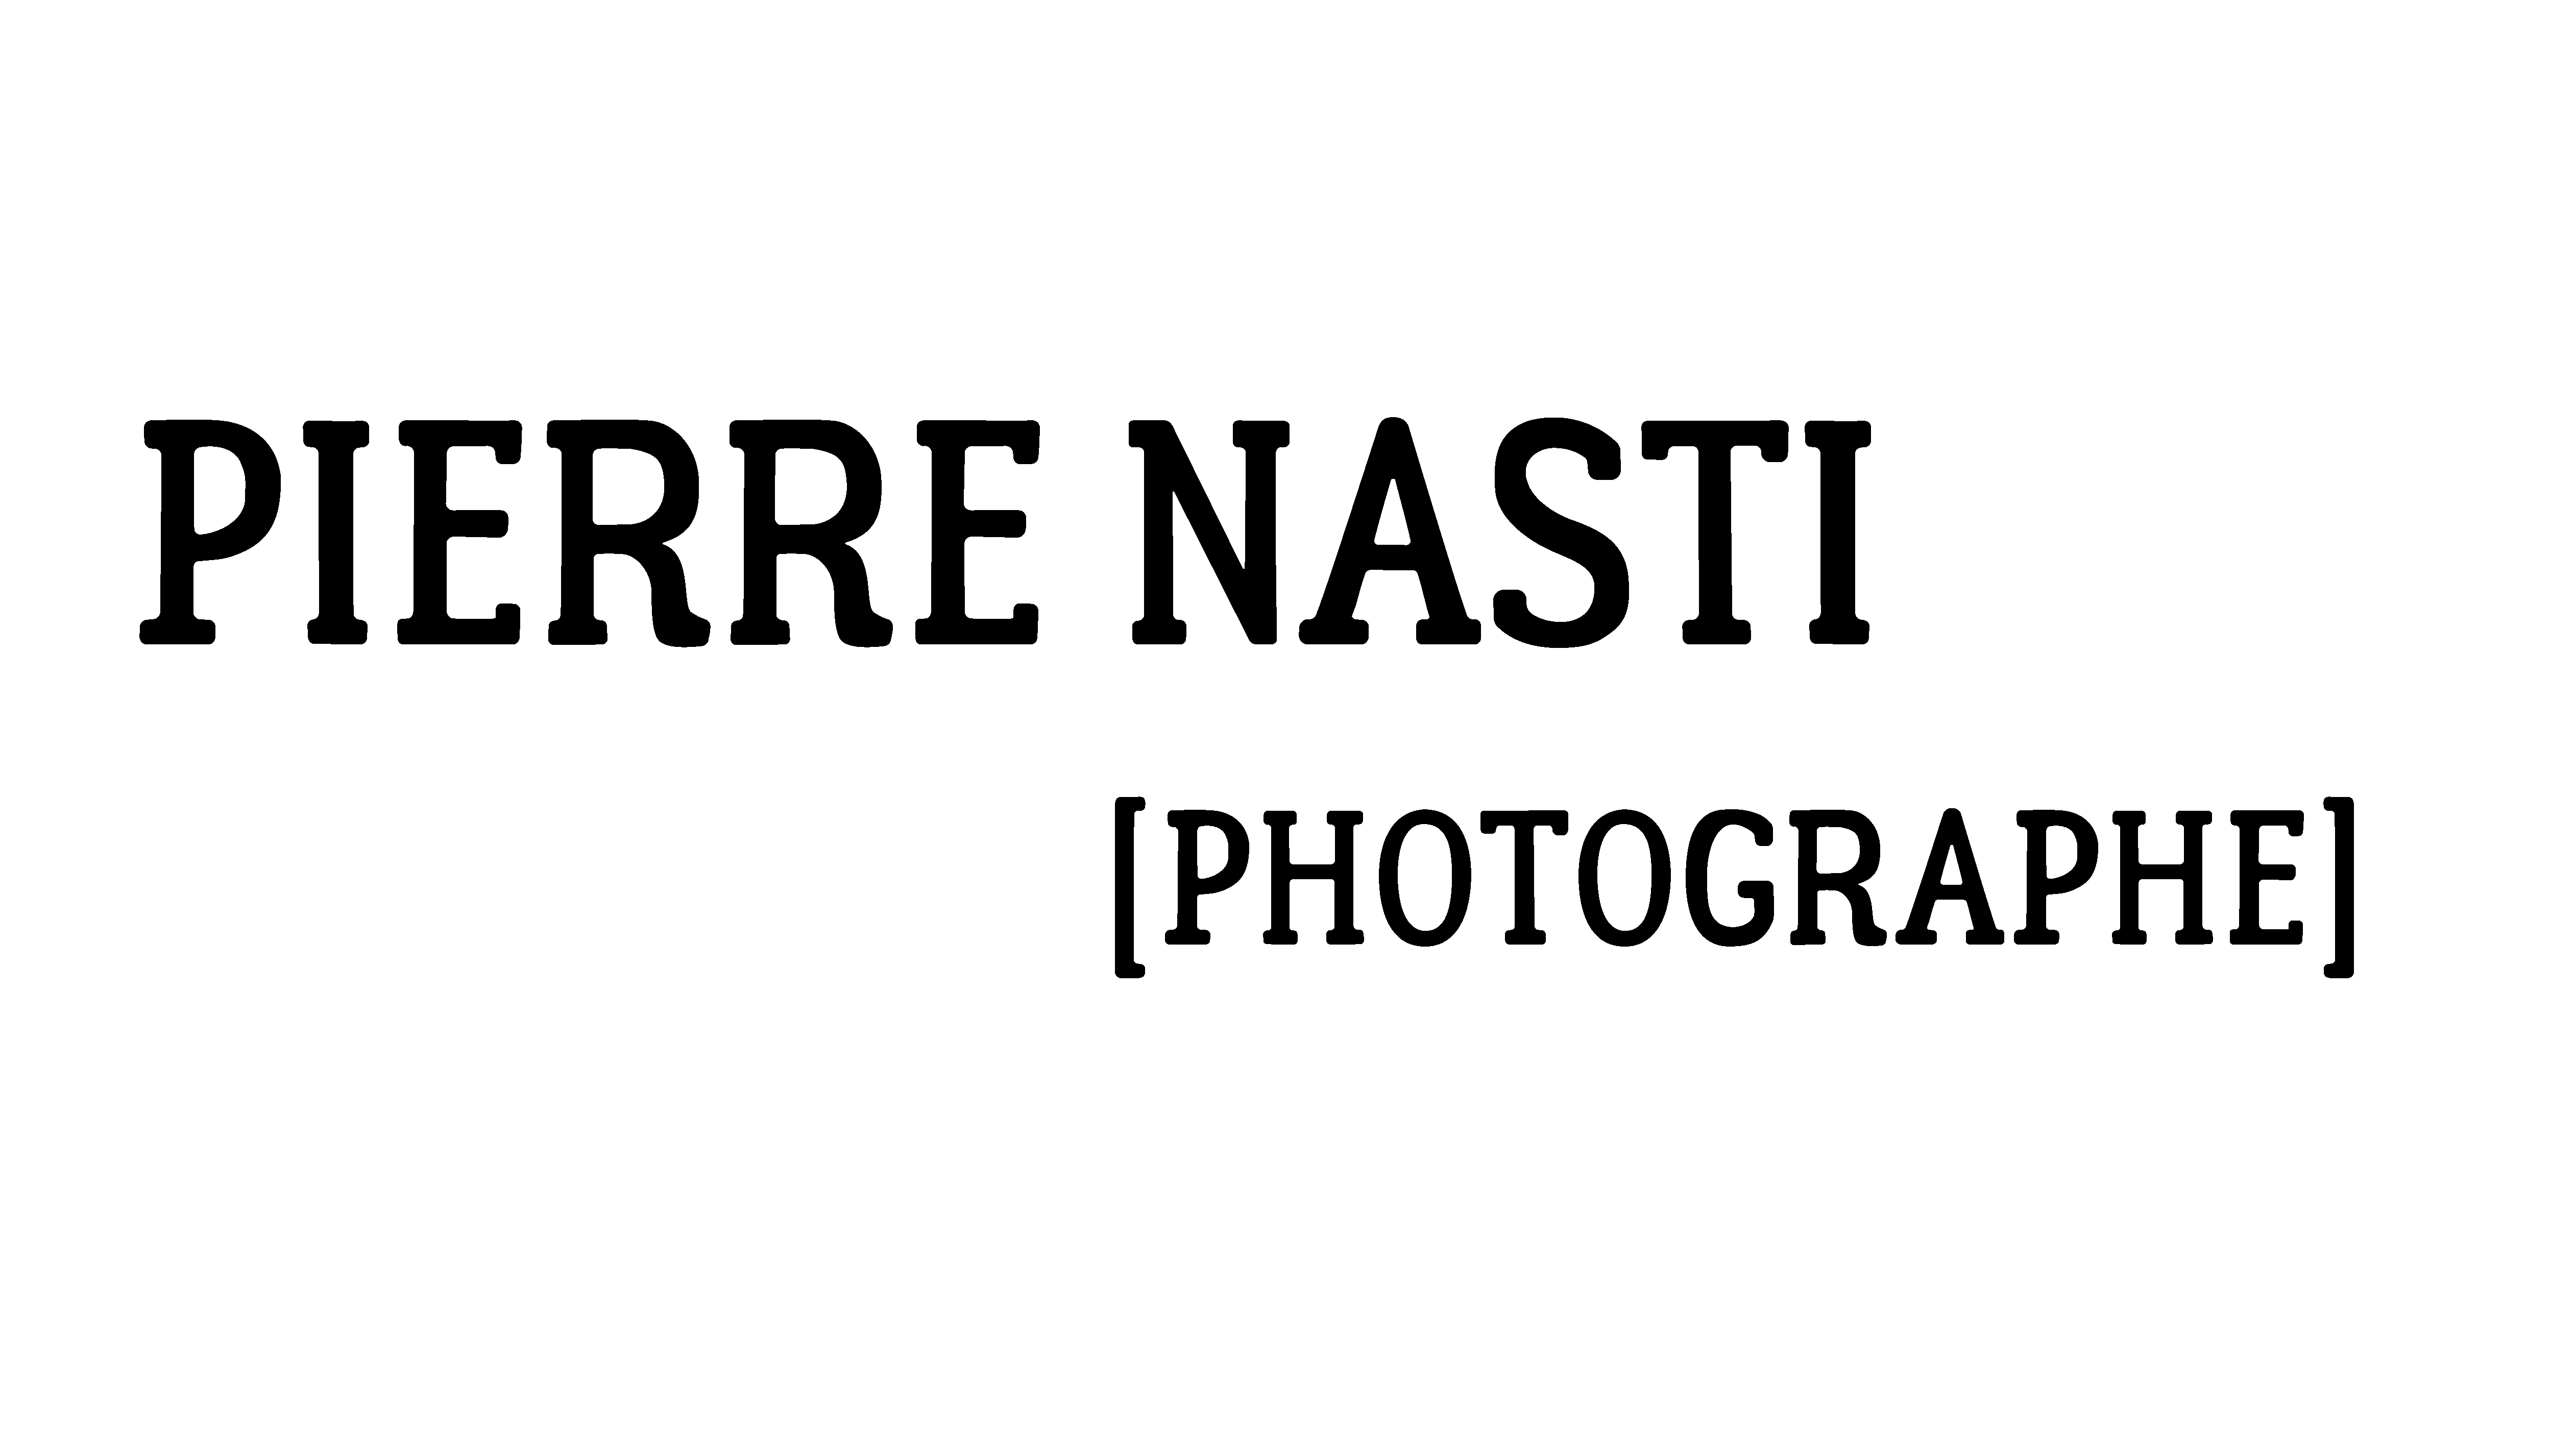 Pierre Nasti - Photographe